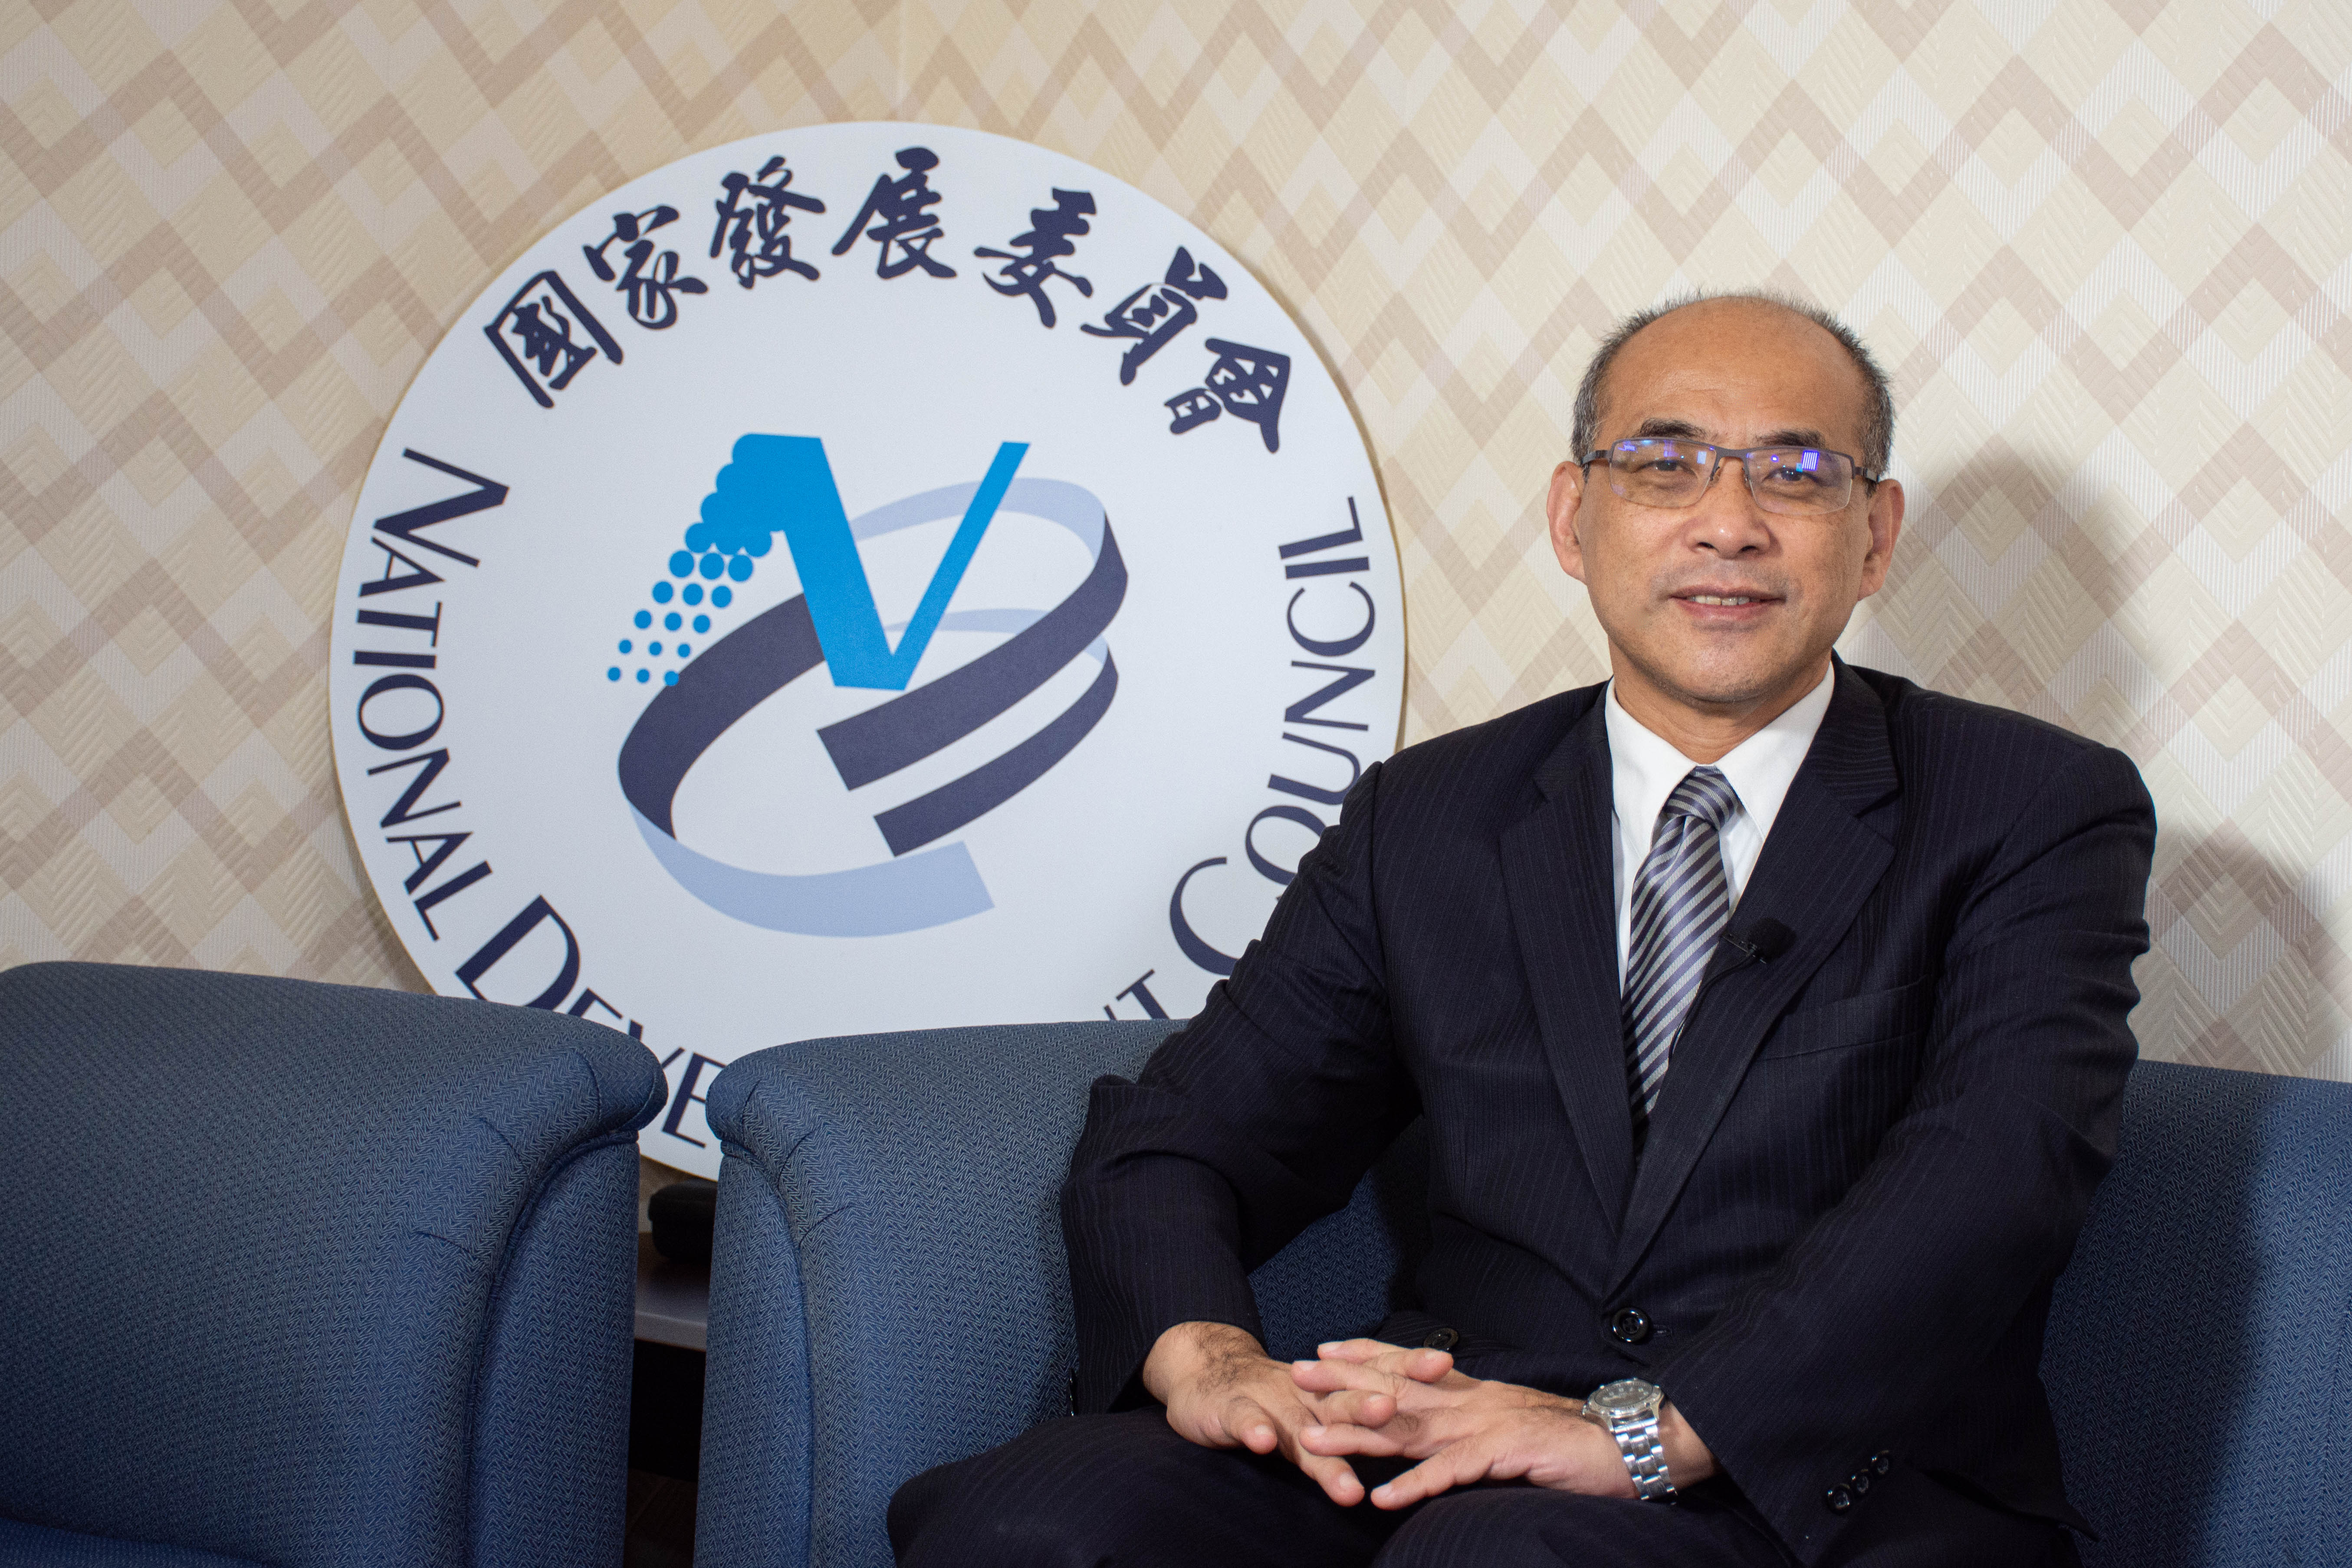 Exclusive interview – CEO Cheng, Cheng-Mount Together with Taiwan's startups, Asia Silicon Valley Development Agency (ASVDA) explores business opportunities in Southeast Asia's picture